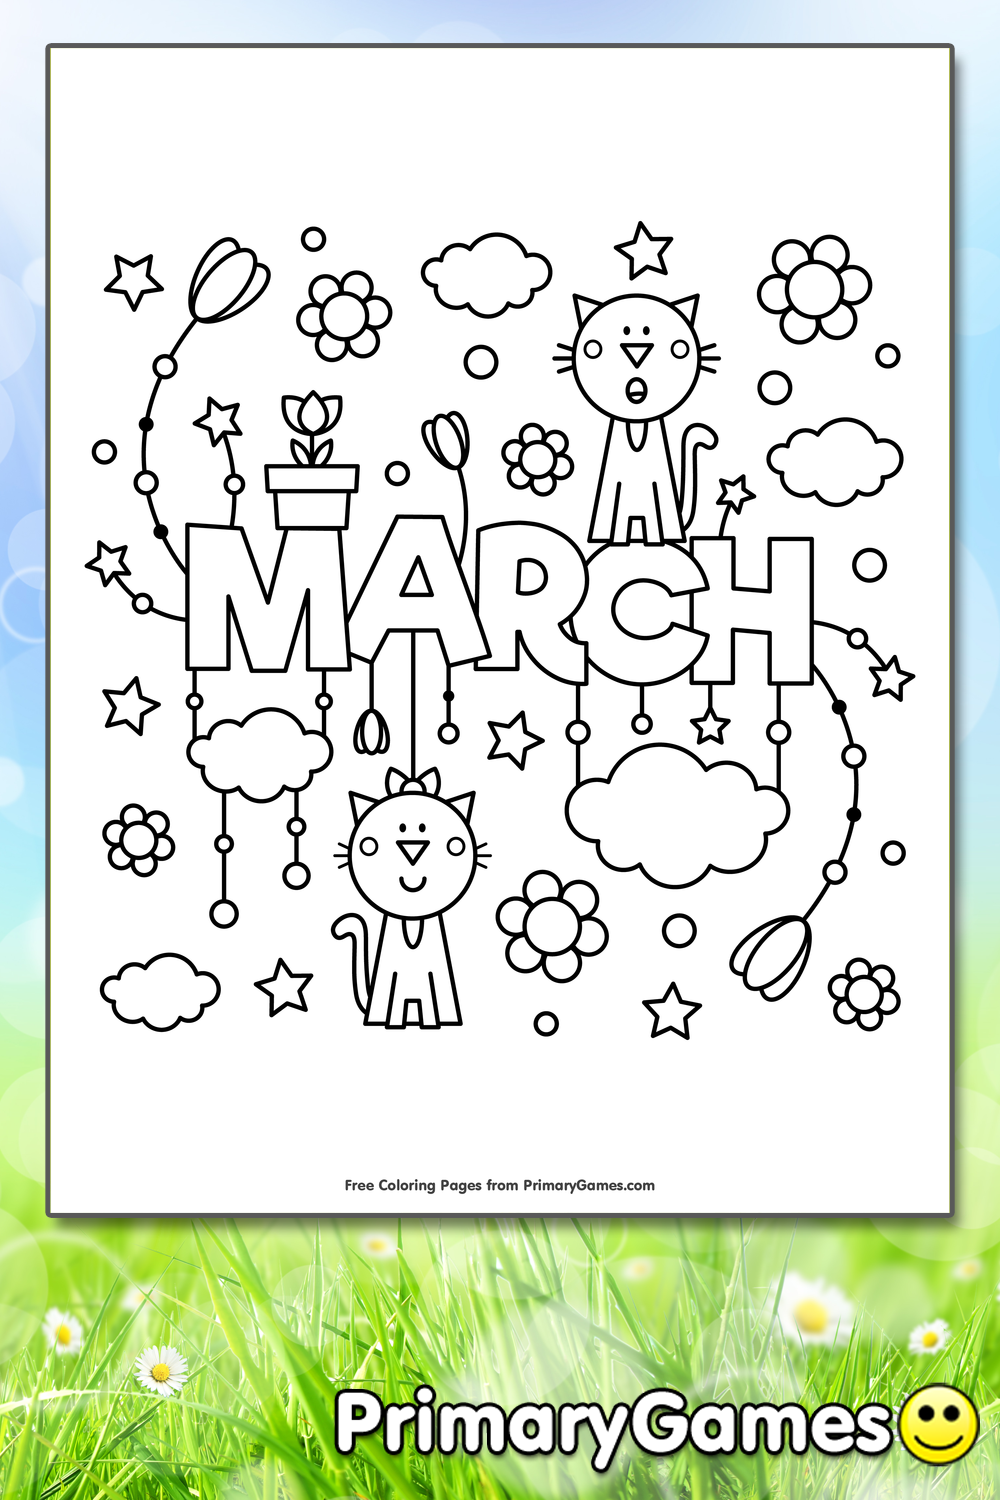 March Coloring Pages Pdf : March coloring page printable spring ebook